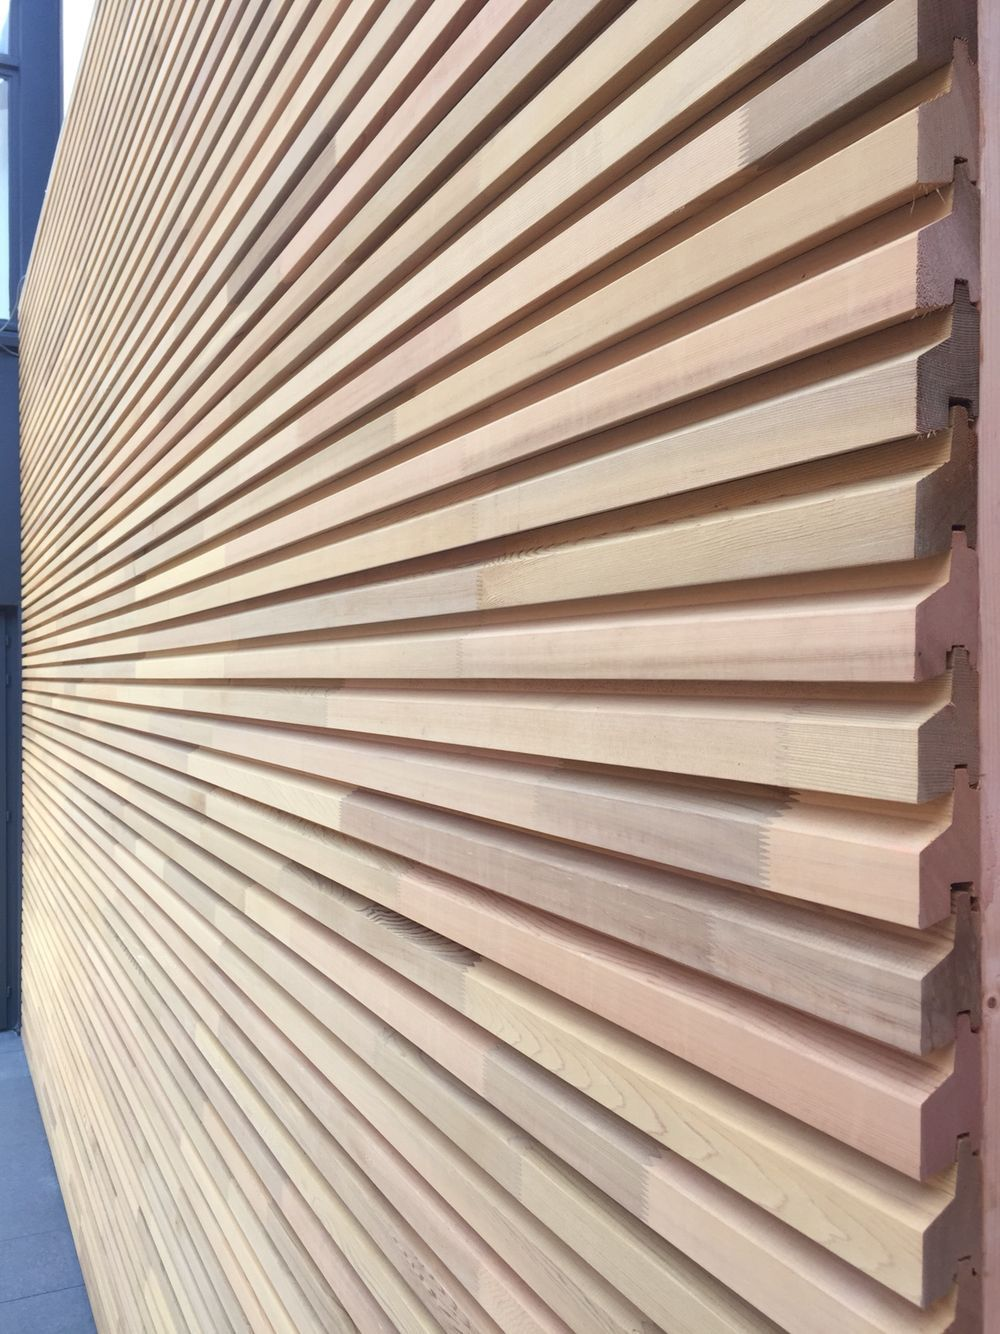 Amazing Timber Cladding Ideas To Spike Up Your Building Design Engineering Basic In 2020 Exterior Wall Cladding Wood Facade Exterior Cladding